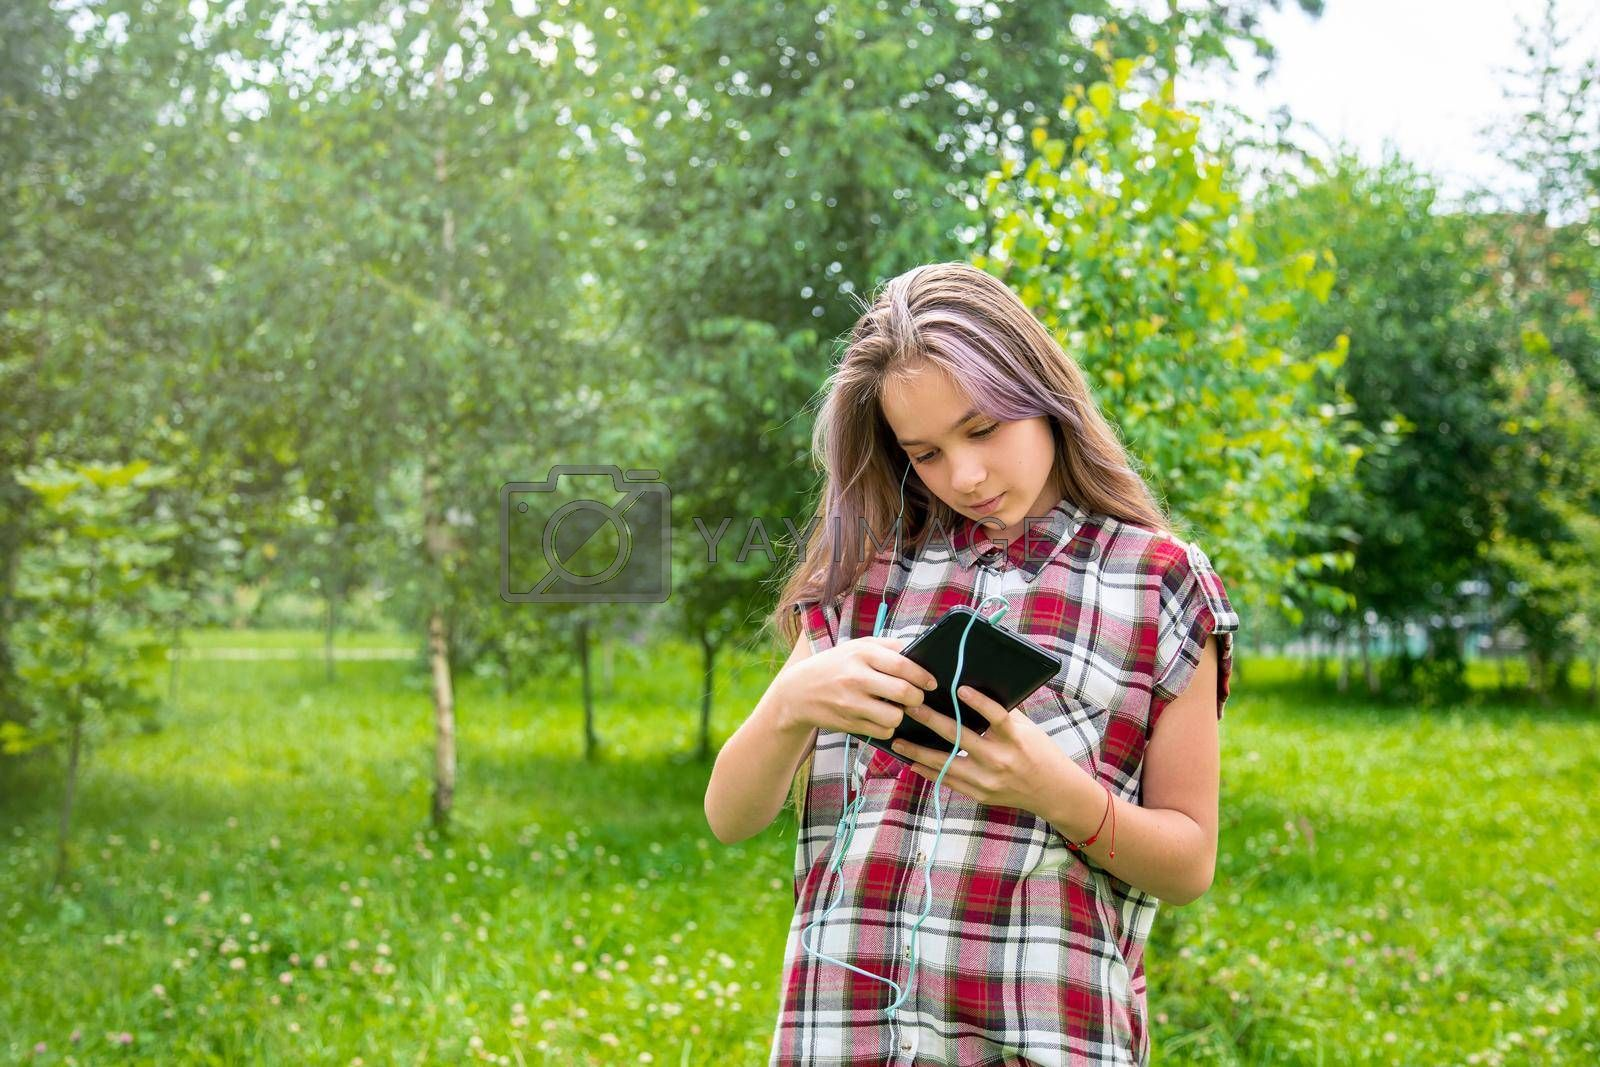 A young girl of 15 years old Caucasian appearance wary with apprehension looks into her mobile phone on the lawn in the park on a summer day. The girl is dressed in a plaid shirt and jeans.